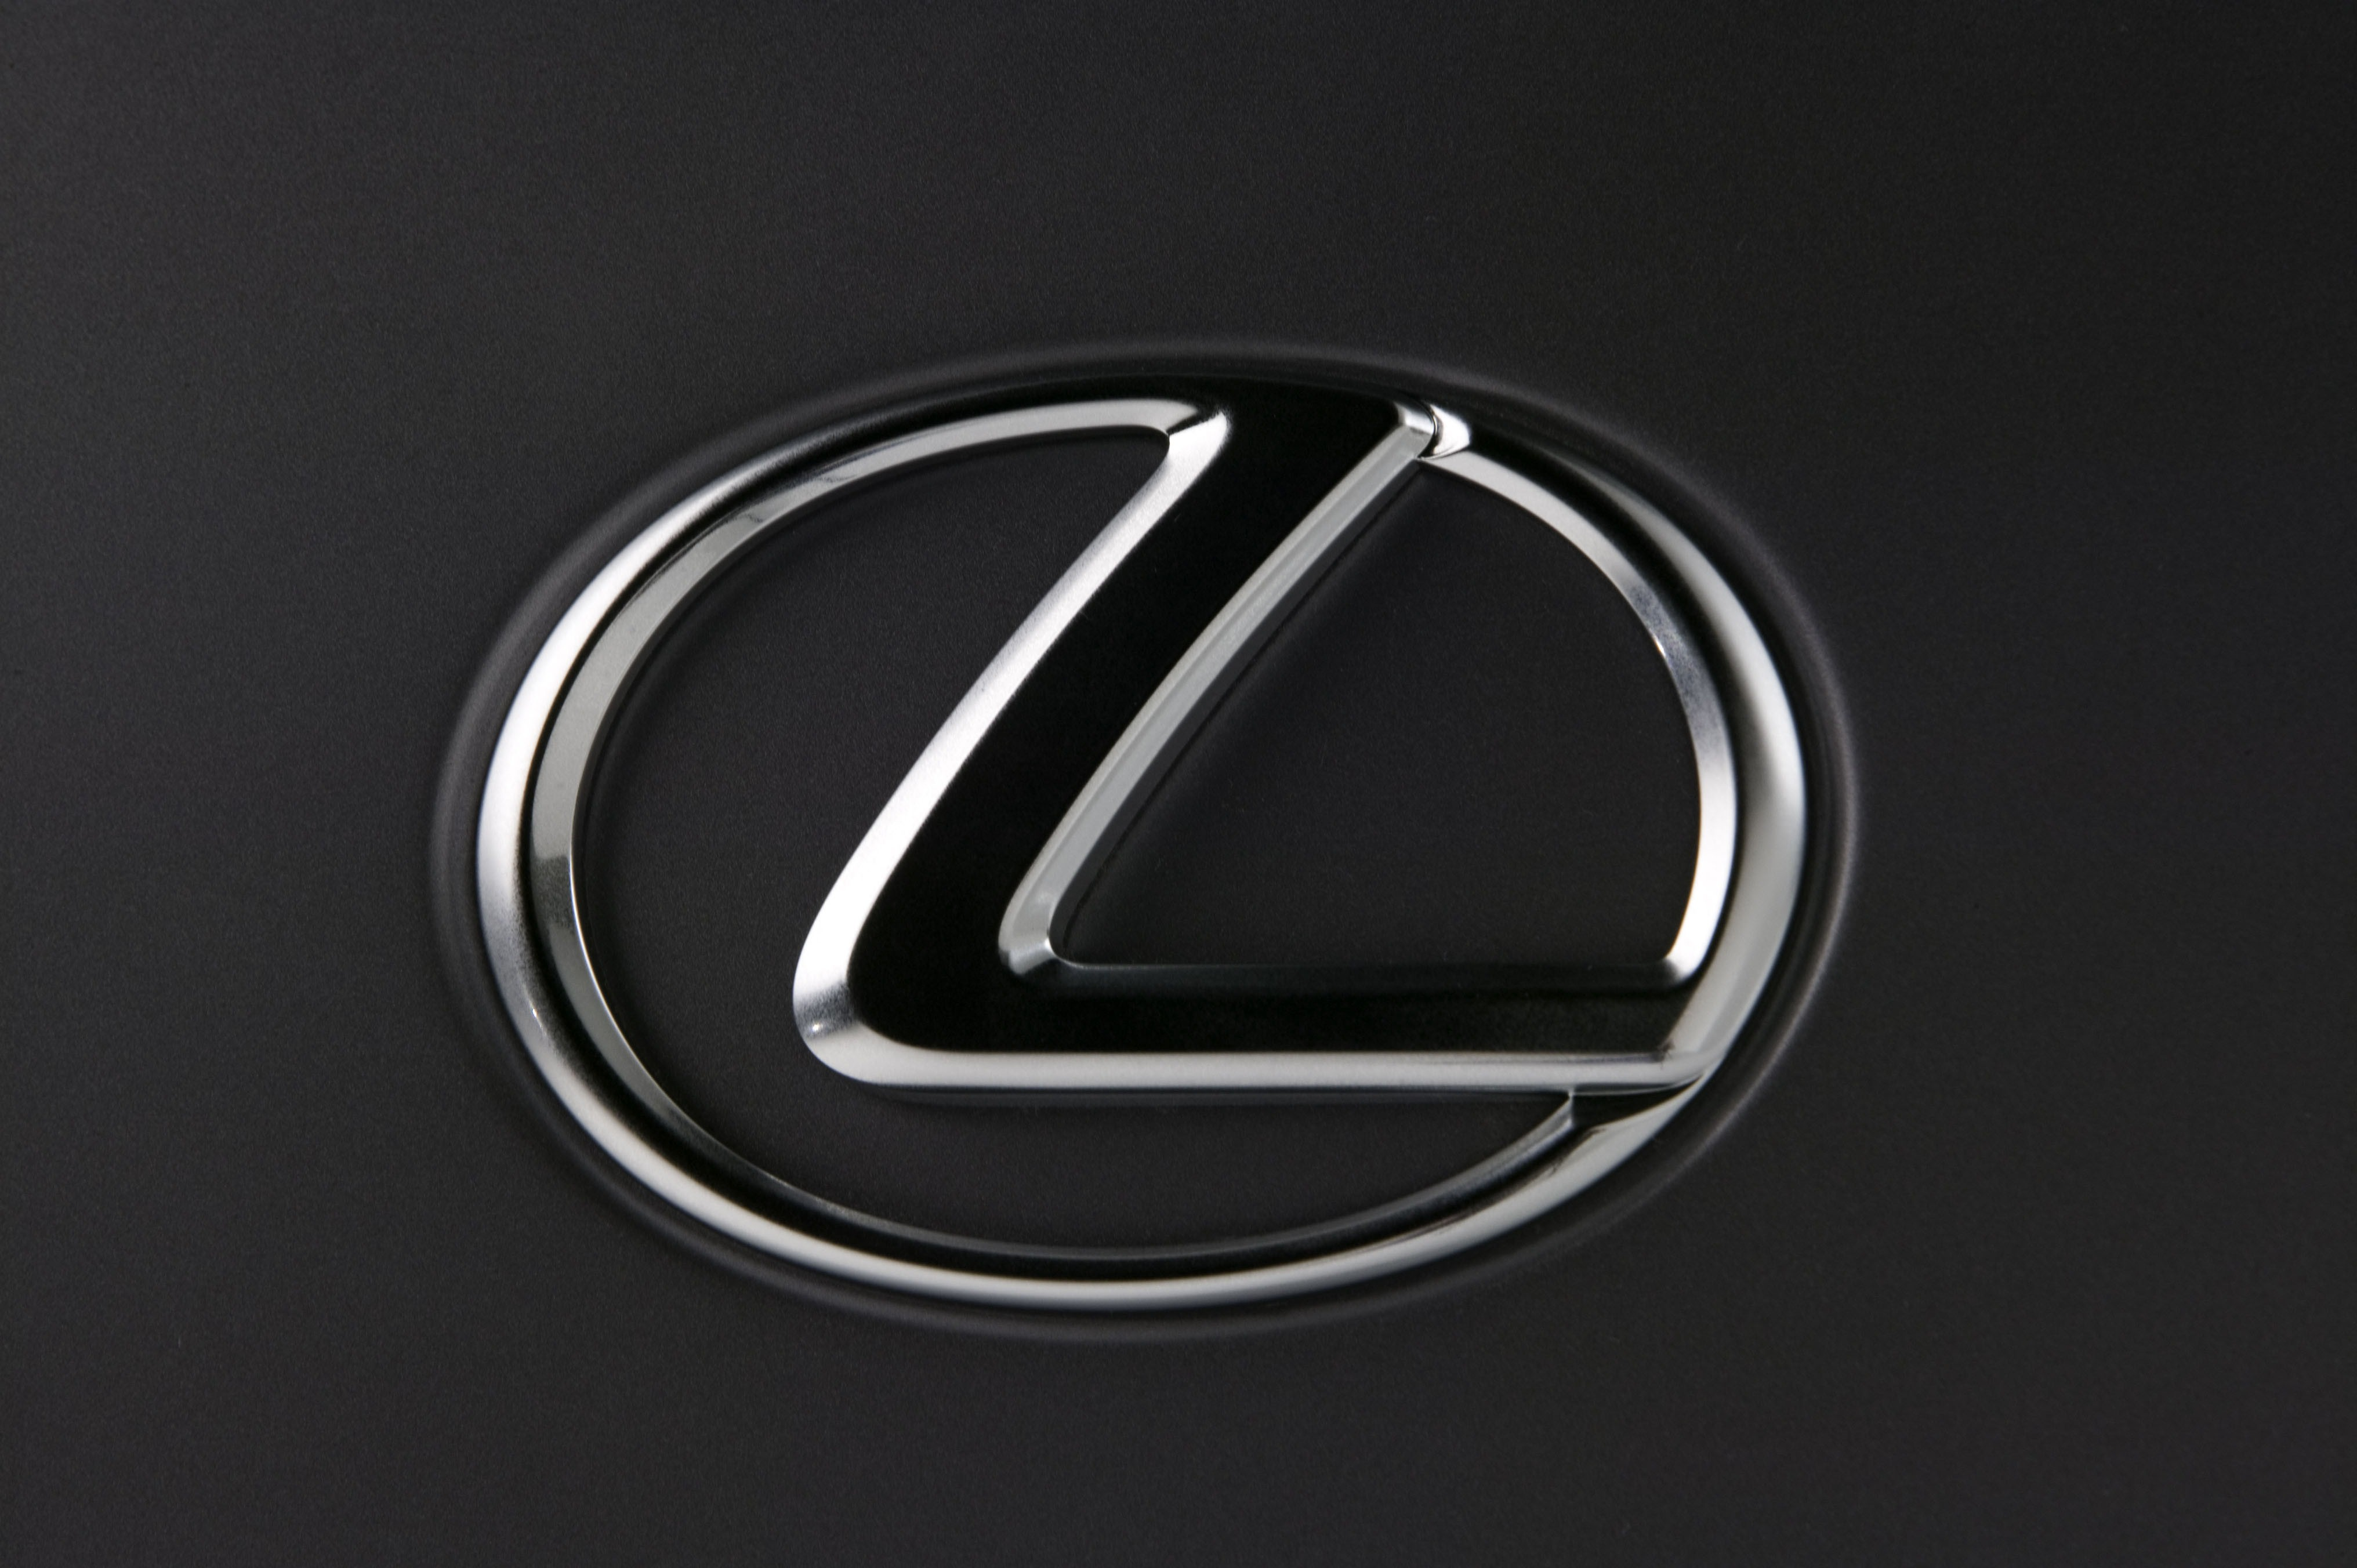 Lexus Emblem Wallpaper